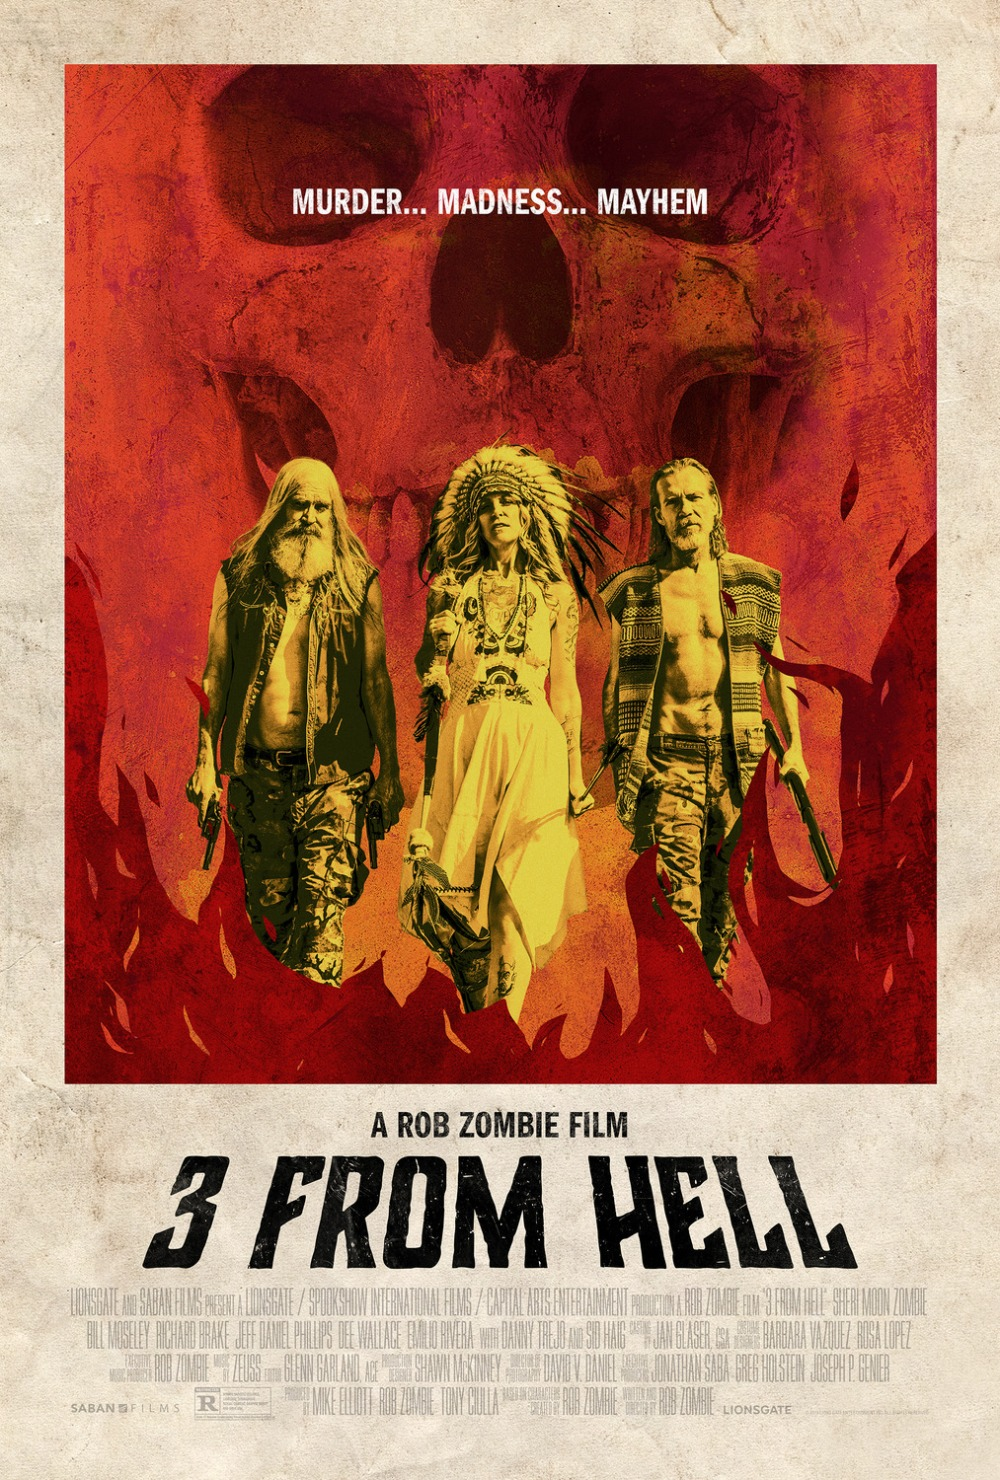 3 From Hell theatrical poster